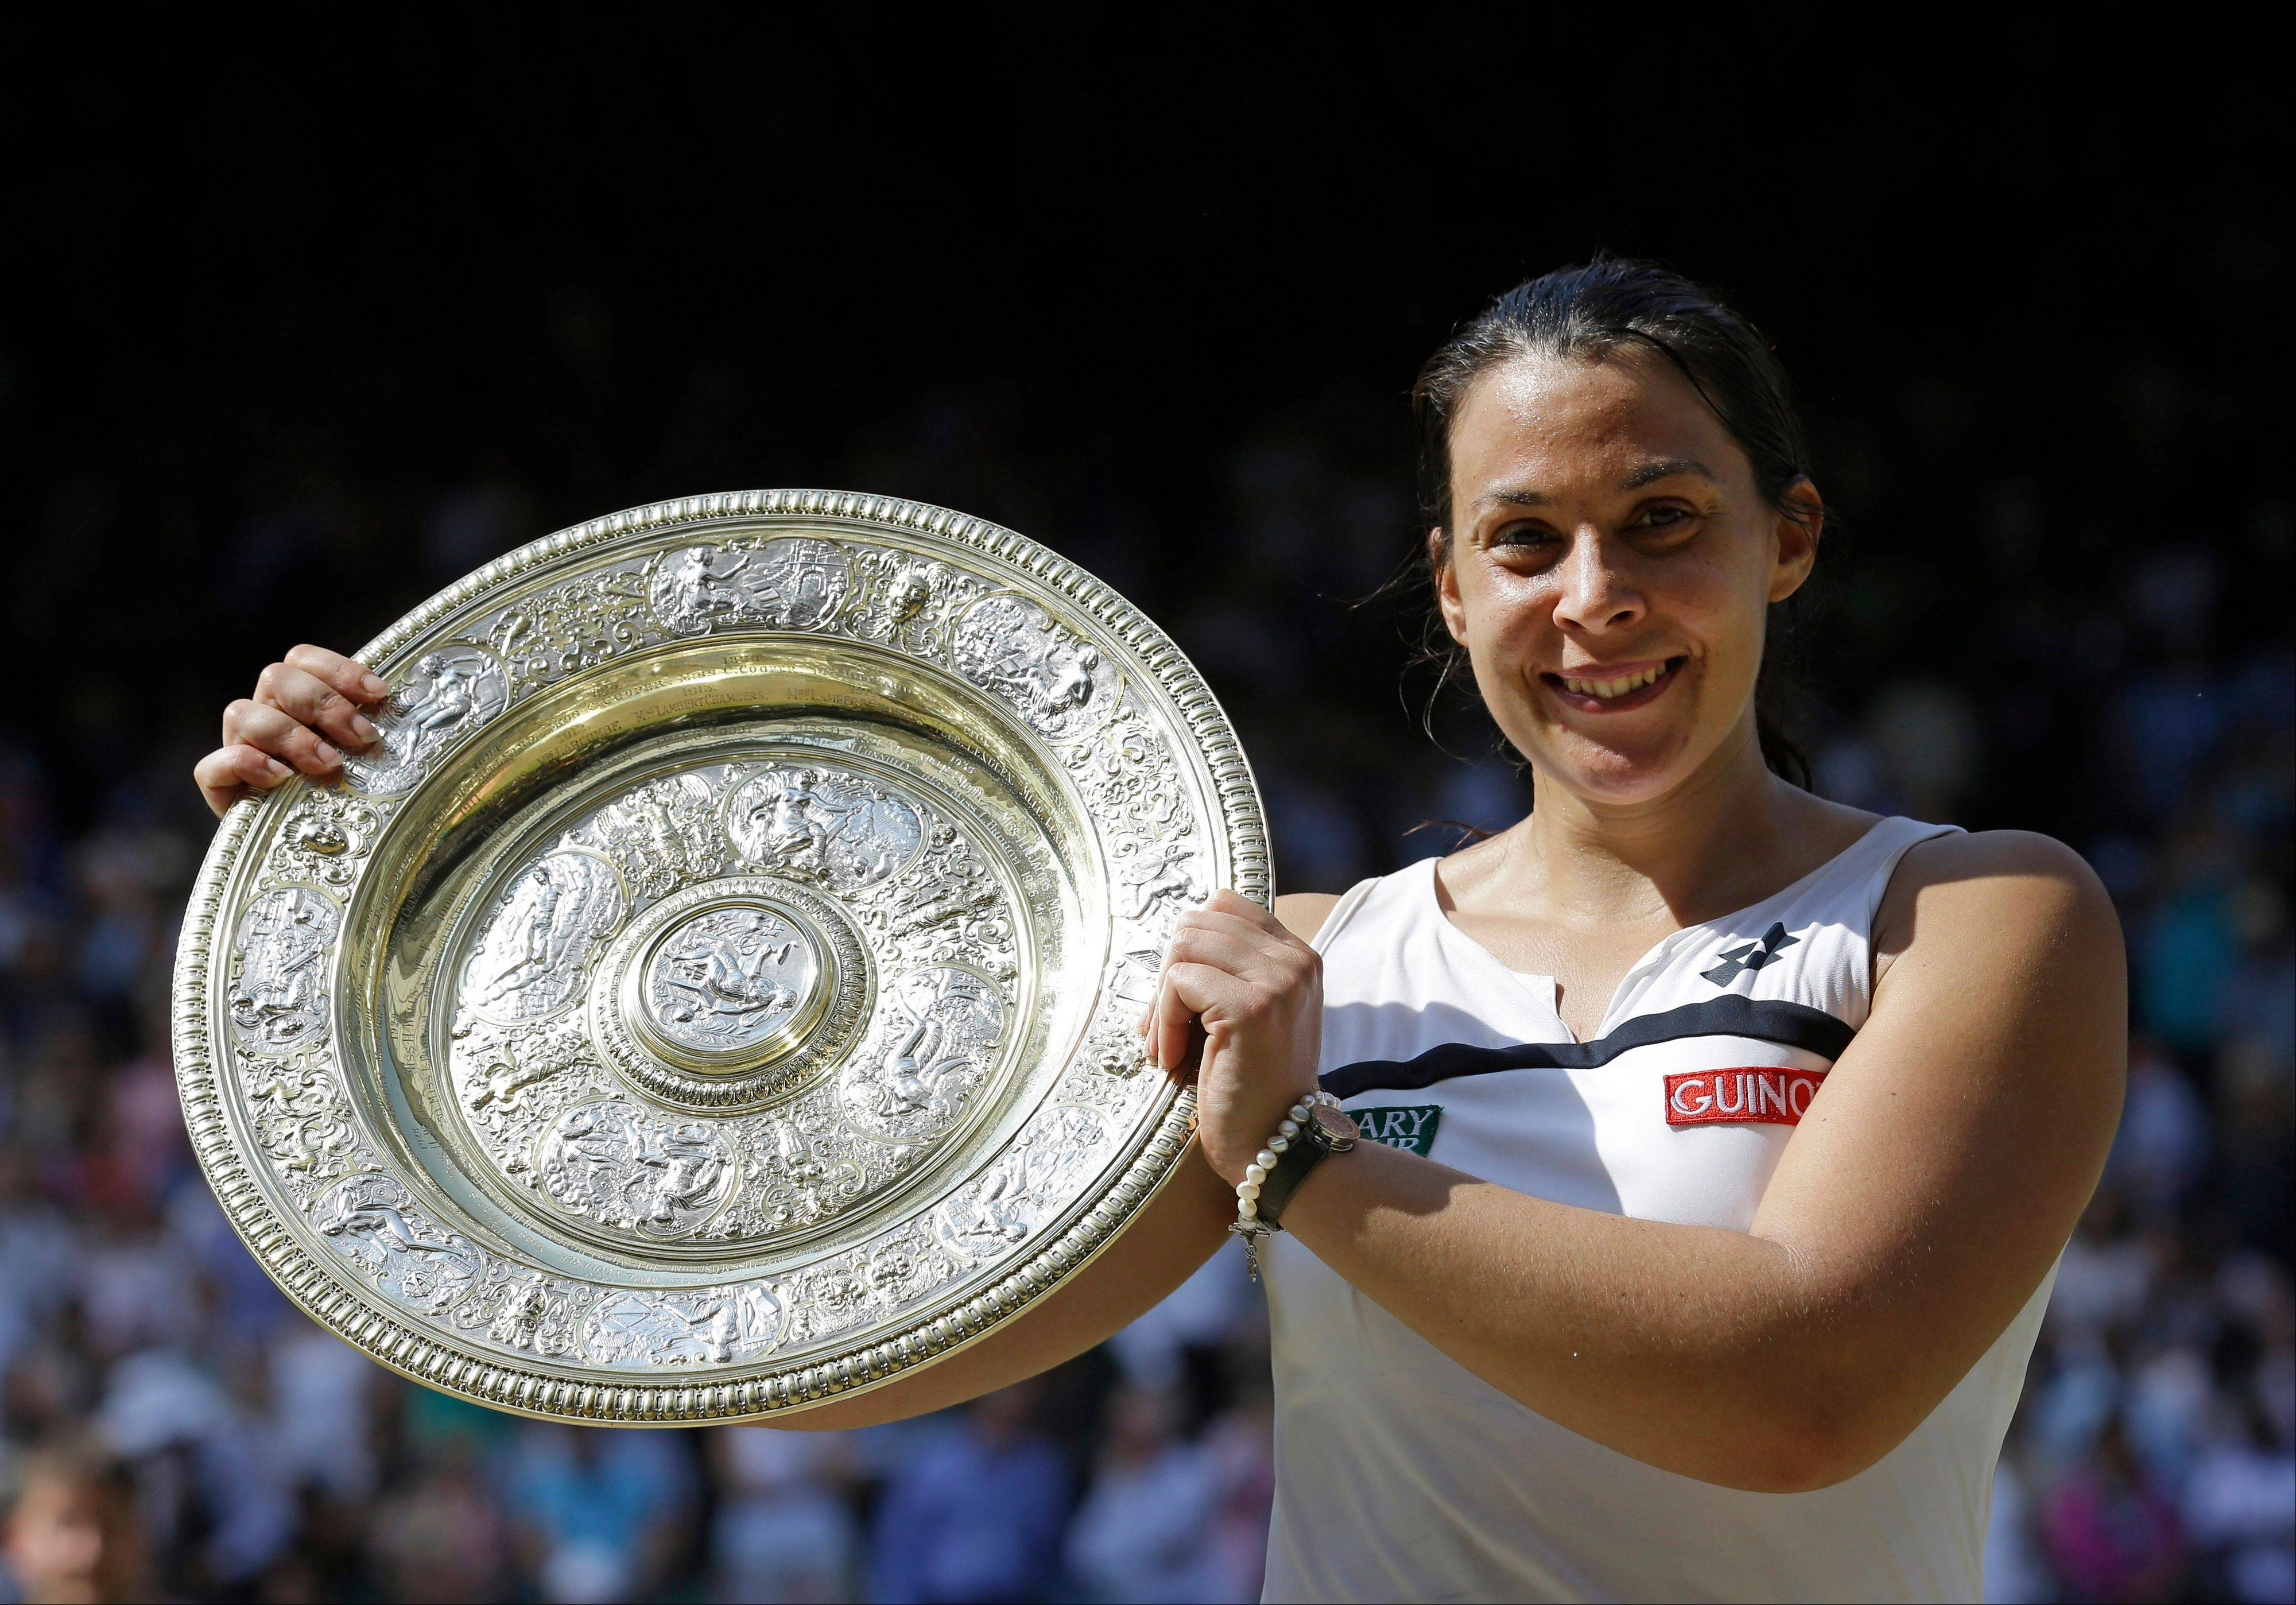 Marion Bartoli, of France, smiles as she holds the trophy after winning the women's Wimbledon singles final in July. With her body aching after another loss, Bartoli decided to retire from tennis Wednesday.